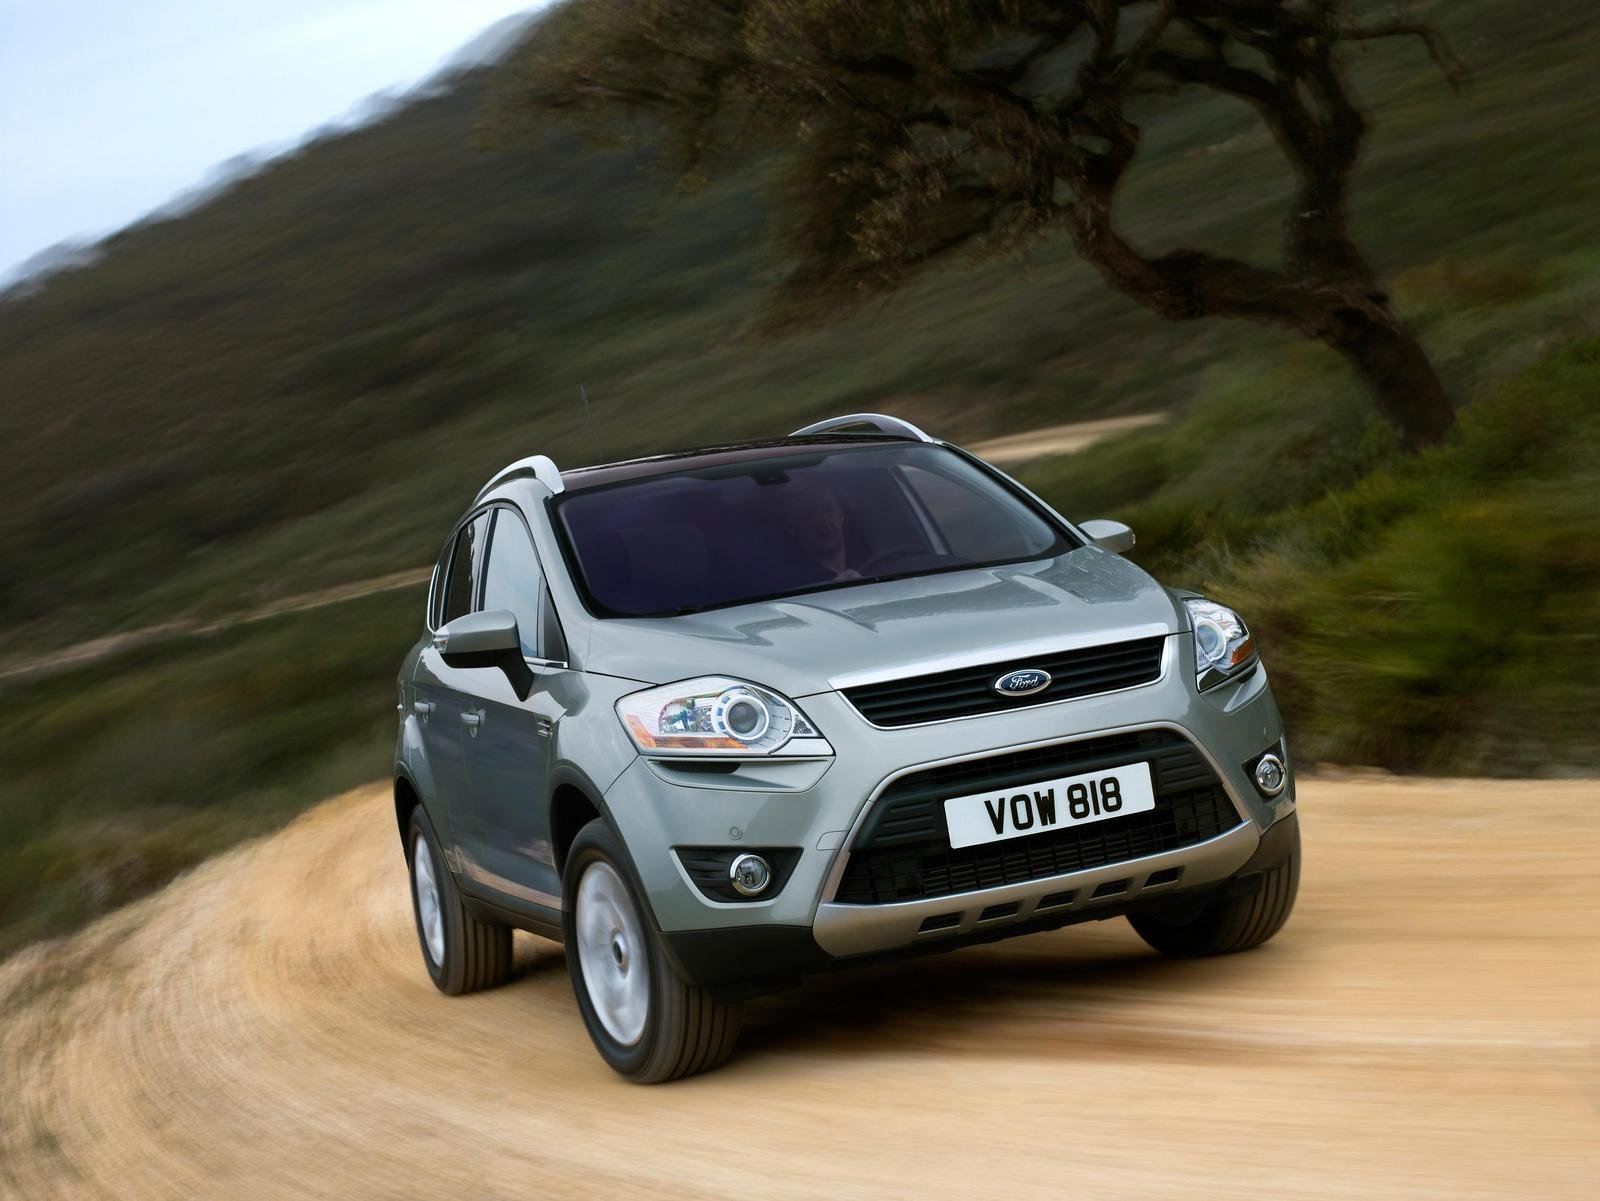 2009 ford kuga picture 232445 car review top speed. Black Bedroom Furniture Sets. Home Design Ideas